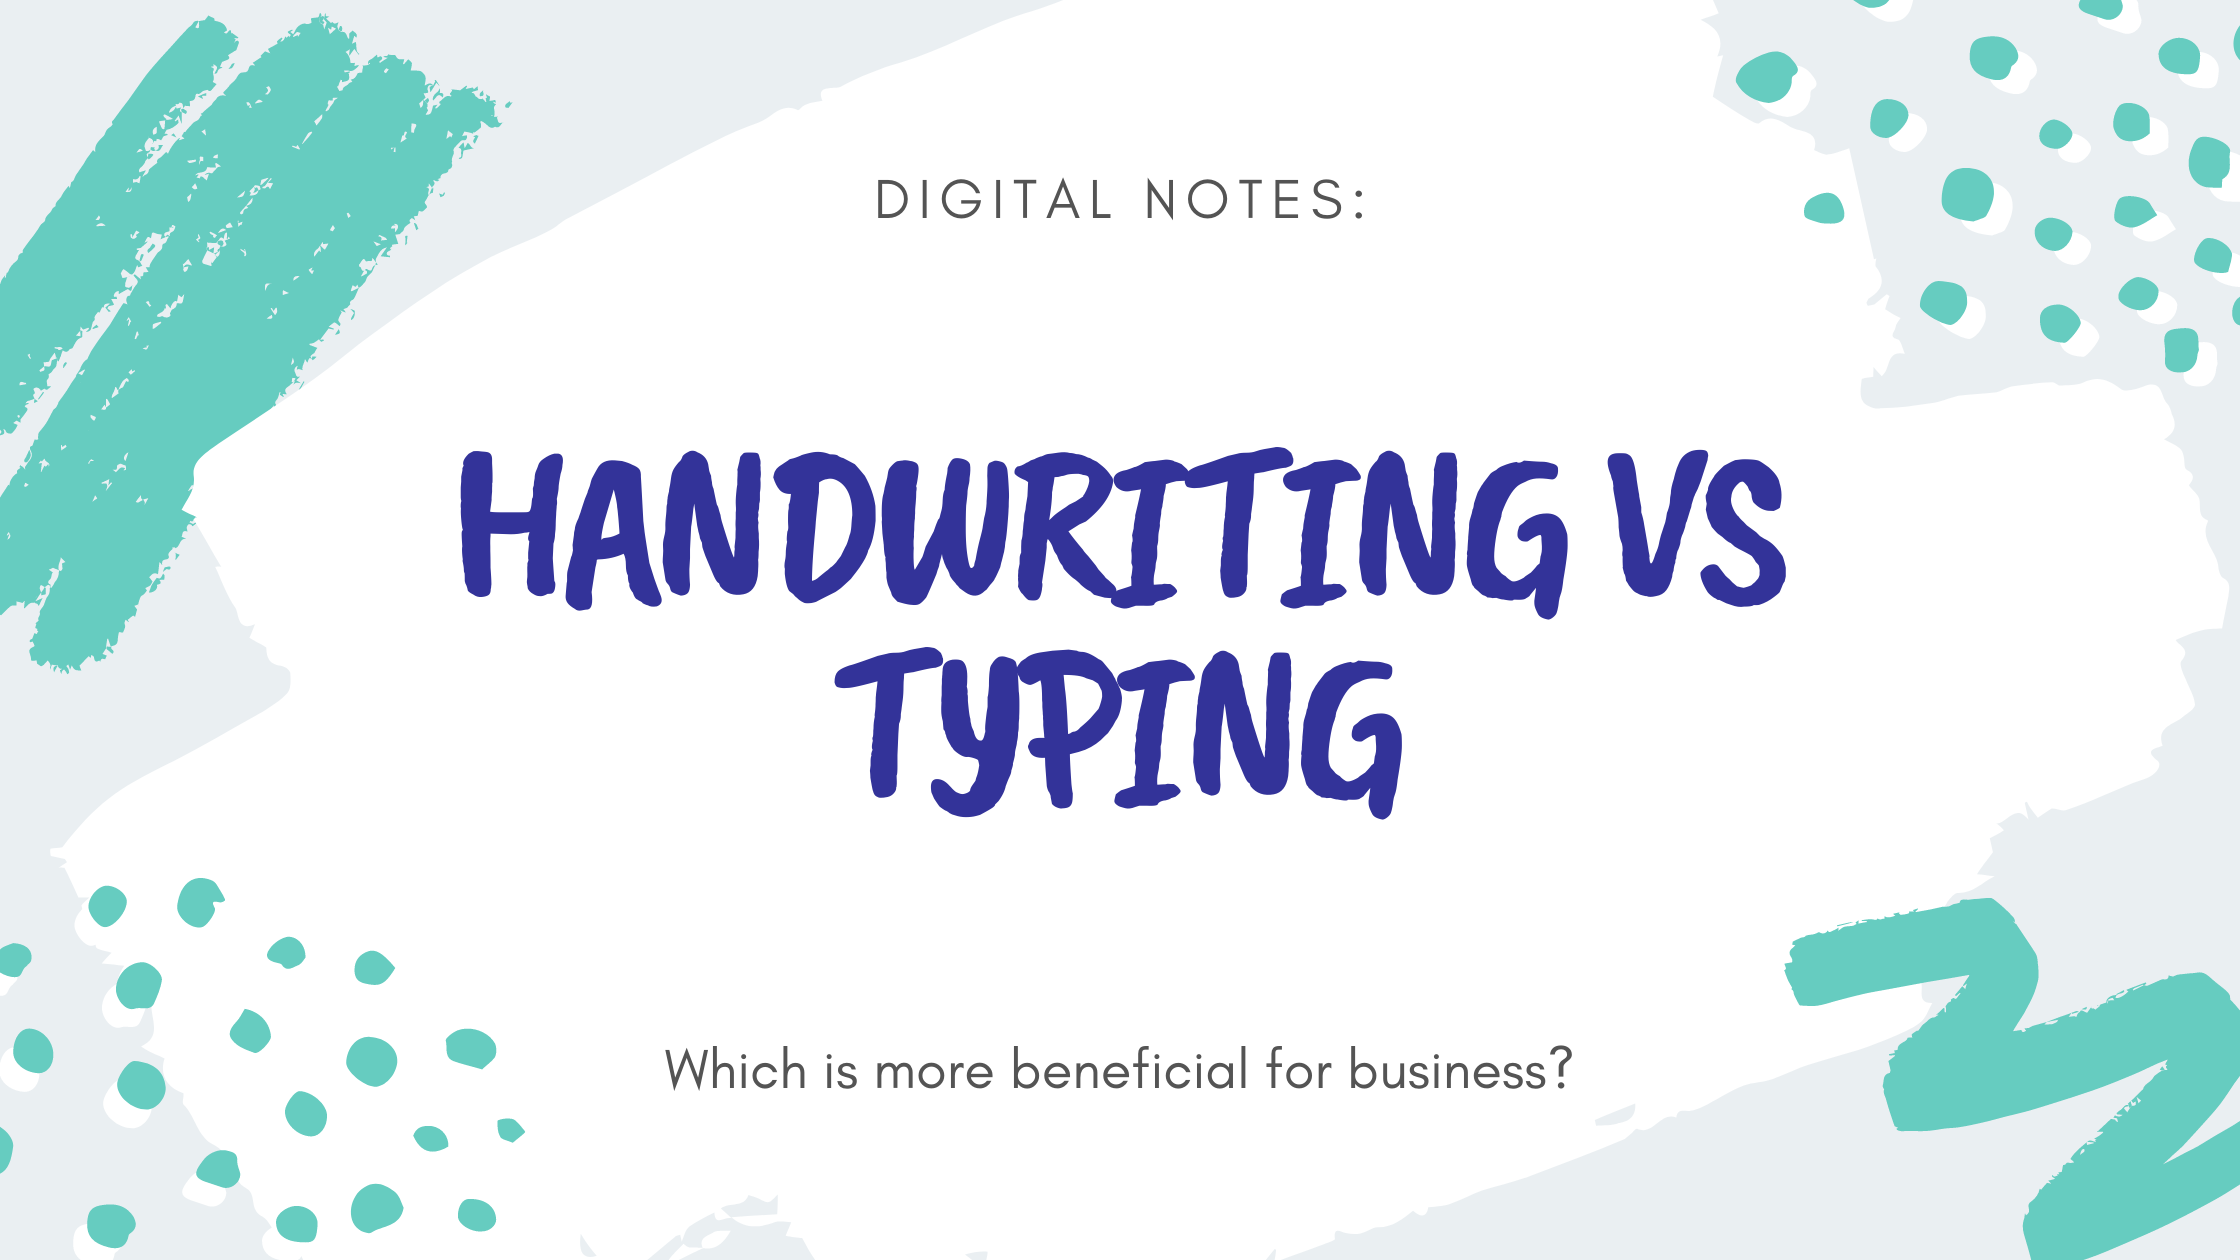 Handwriting or typing notes?